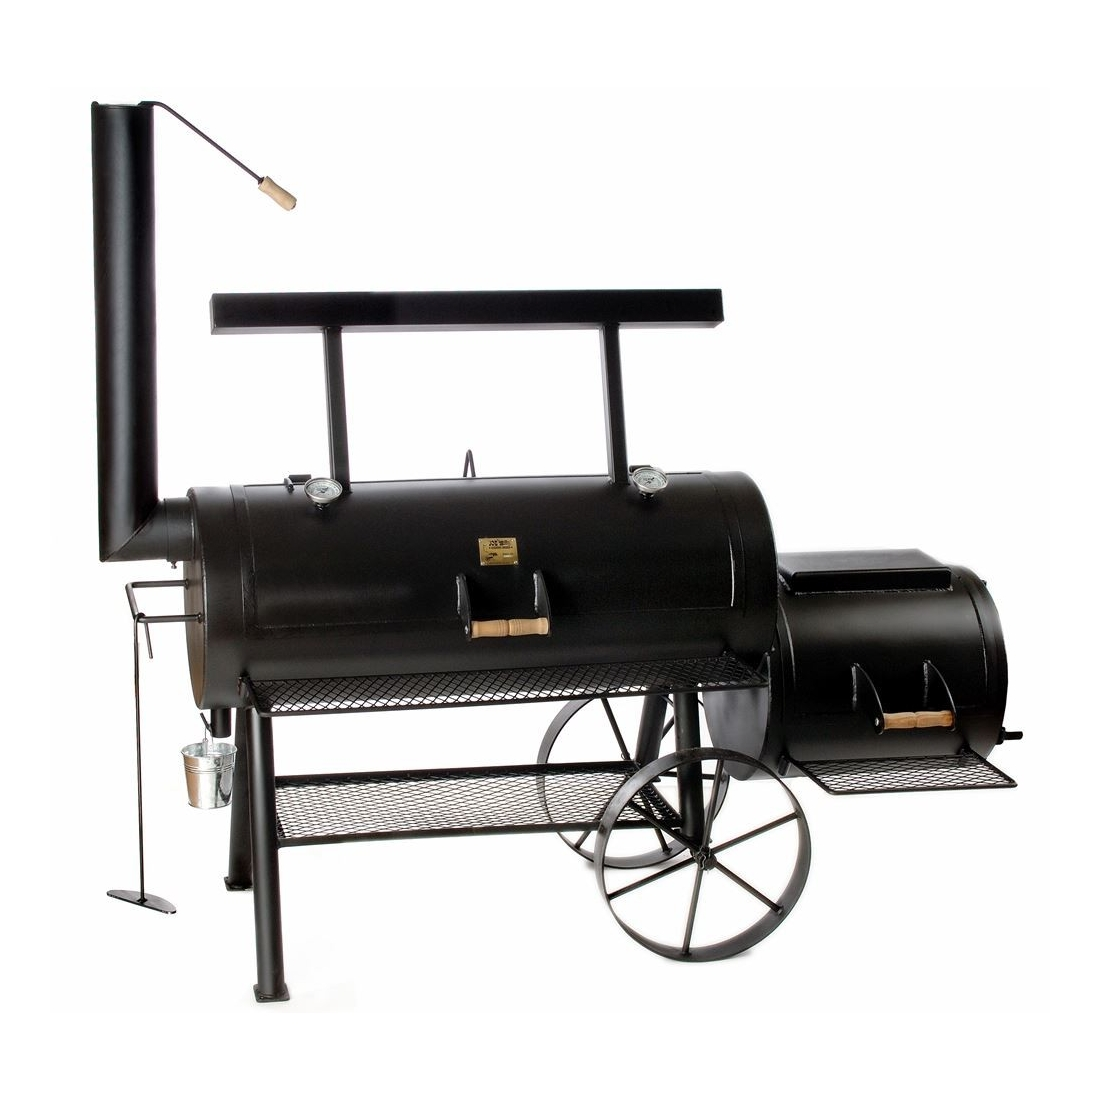 joe s bbq smoker championship 20 longhorn griller shop graz. Black Bedroom Furniture Sets. Home Design Ideas